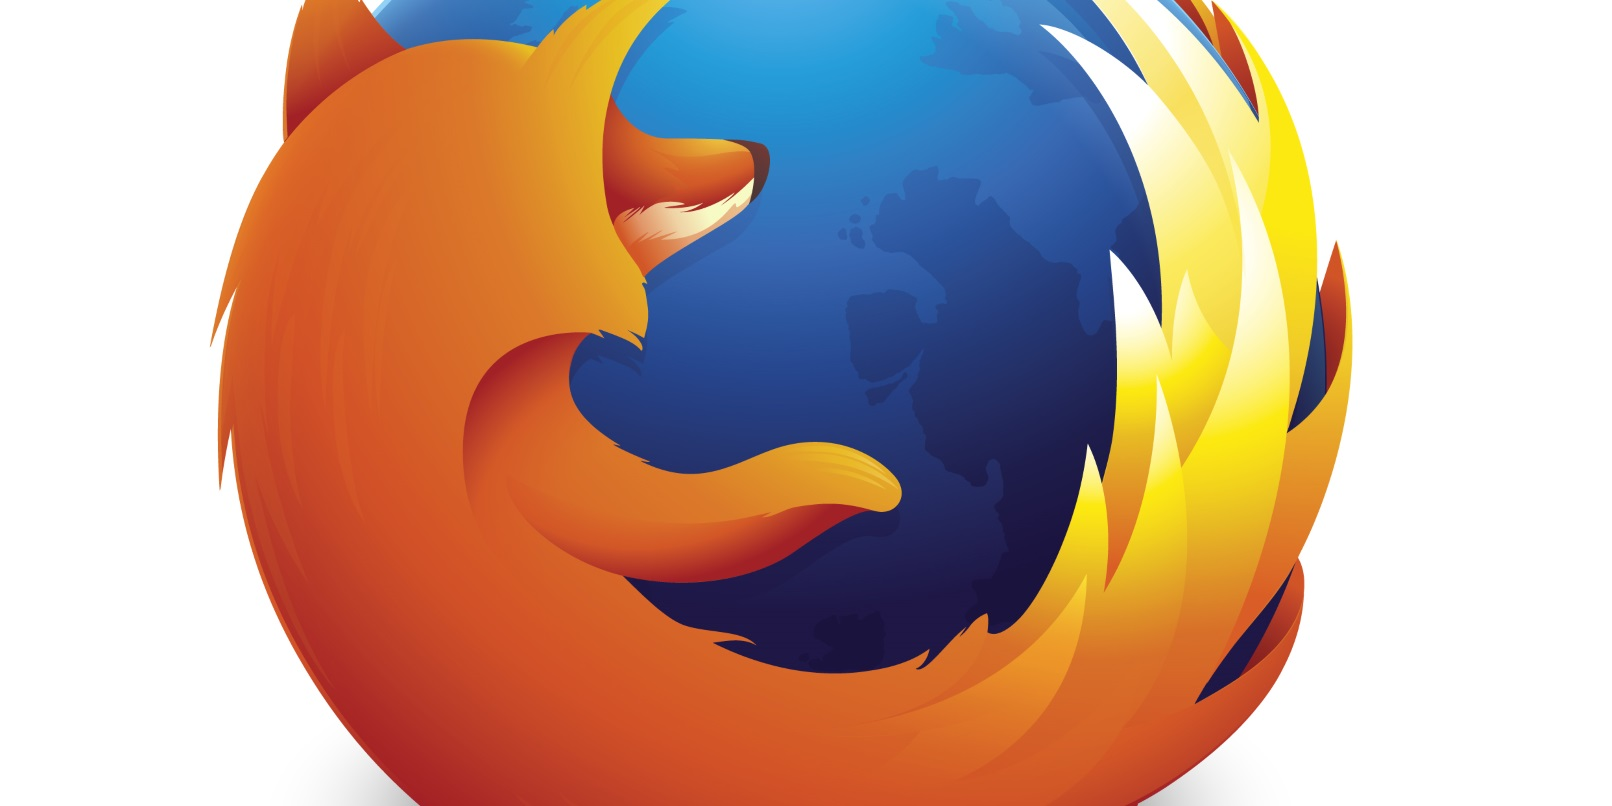 Firefox is getting a Tor-based security upgrade